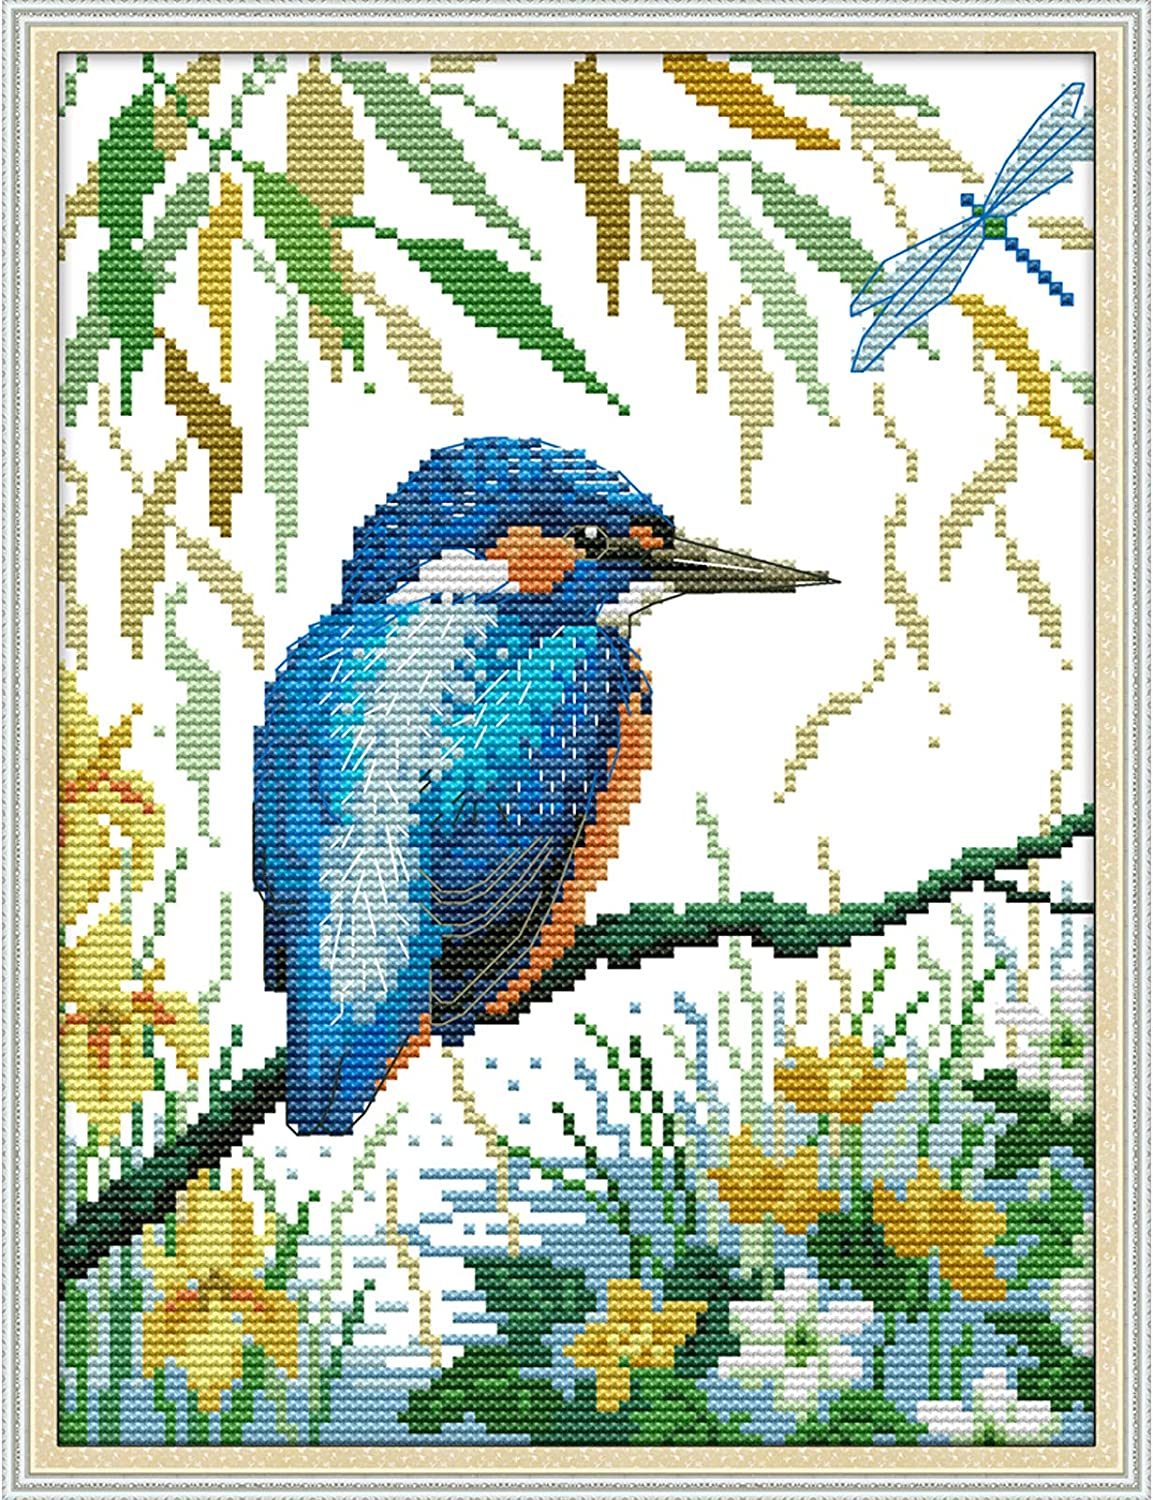 Printed Cross Stitch Kits 11CT Full Range DIY Embroidery Starter Kits Easy Patterns Embroidery for Girls Crafts DMC Cotton Stamped Cross-Little Bird 11x15 inch